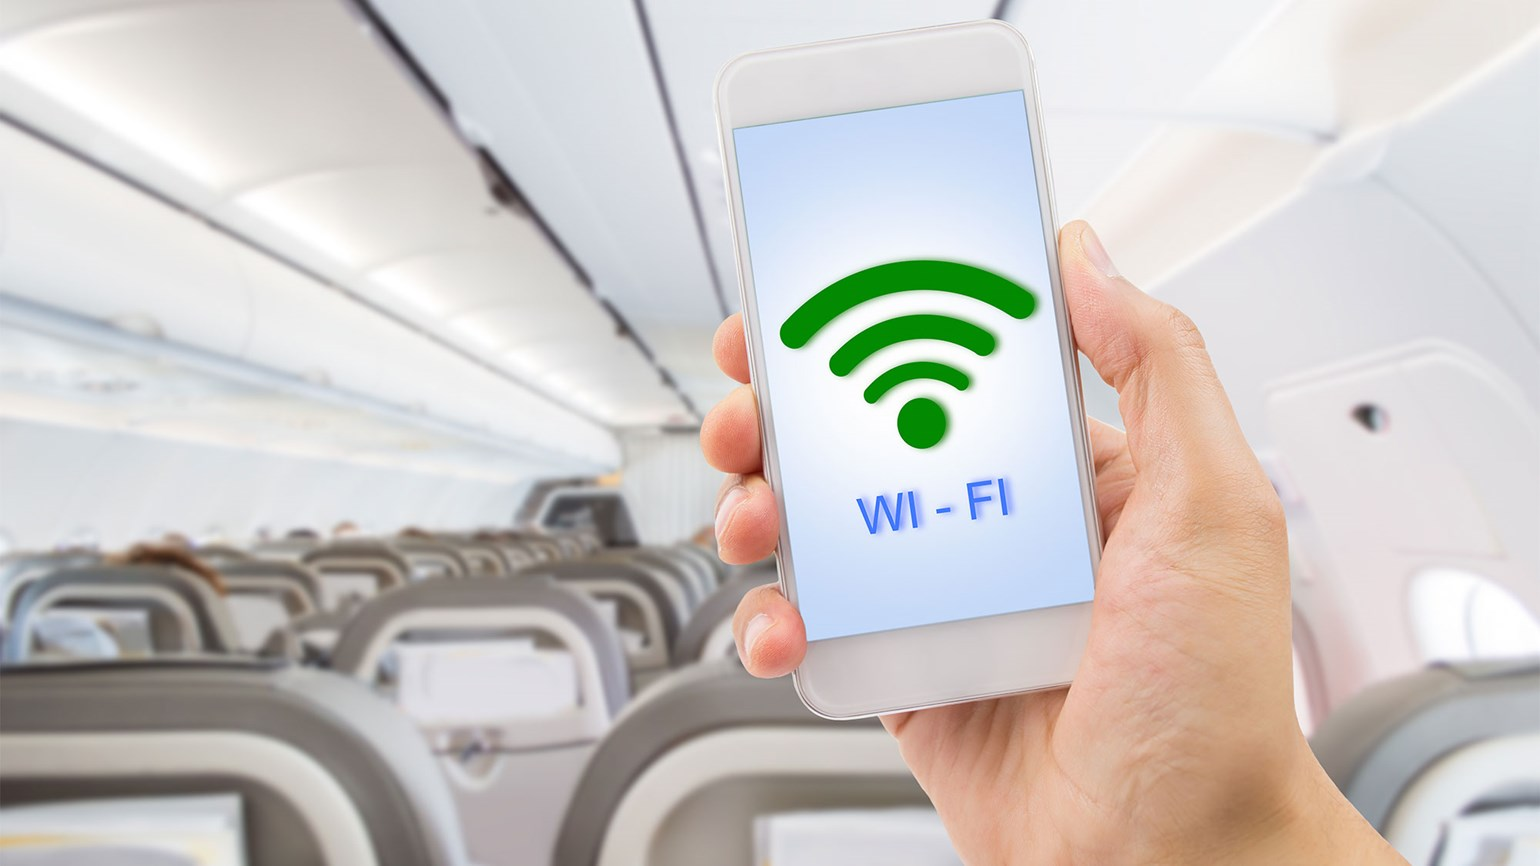 Gogo enables longer WiFi connectivity on flights